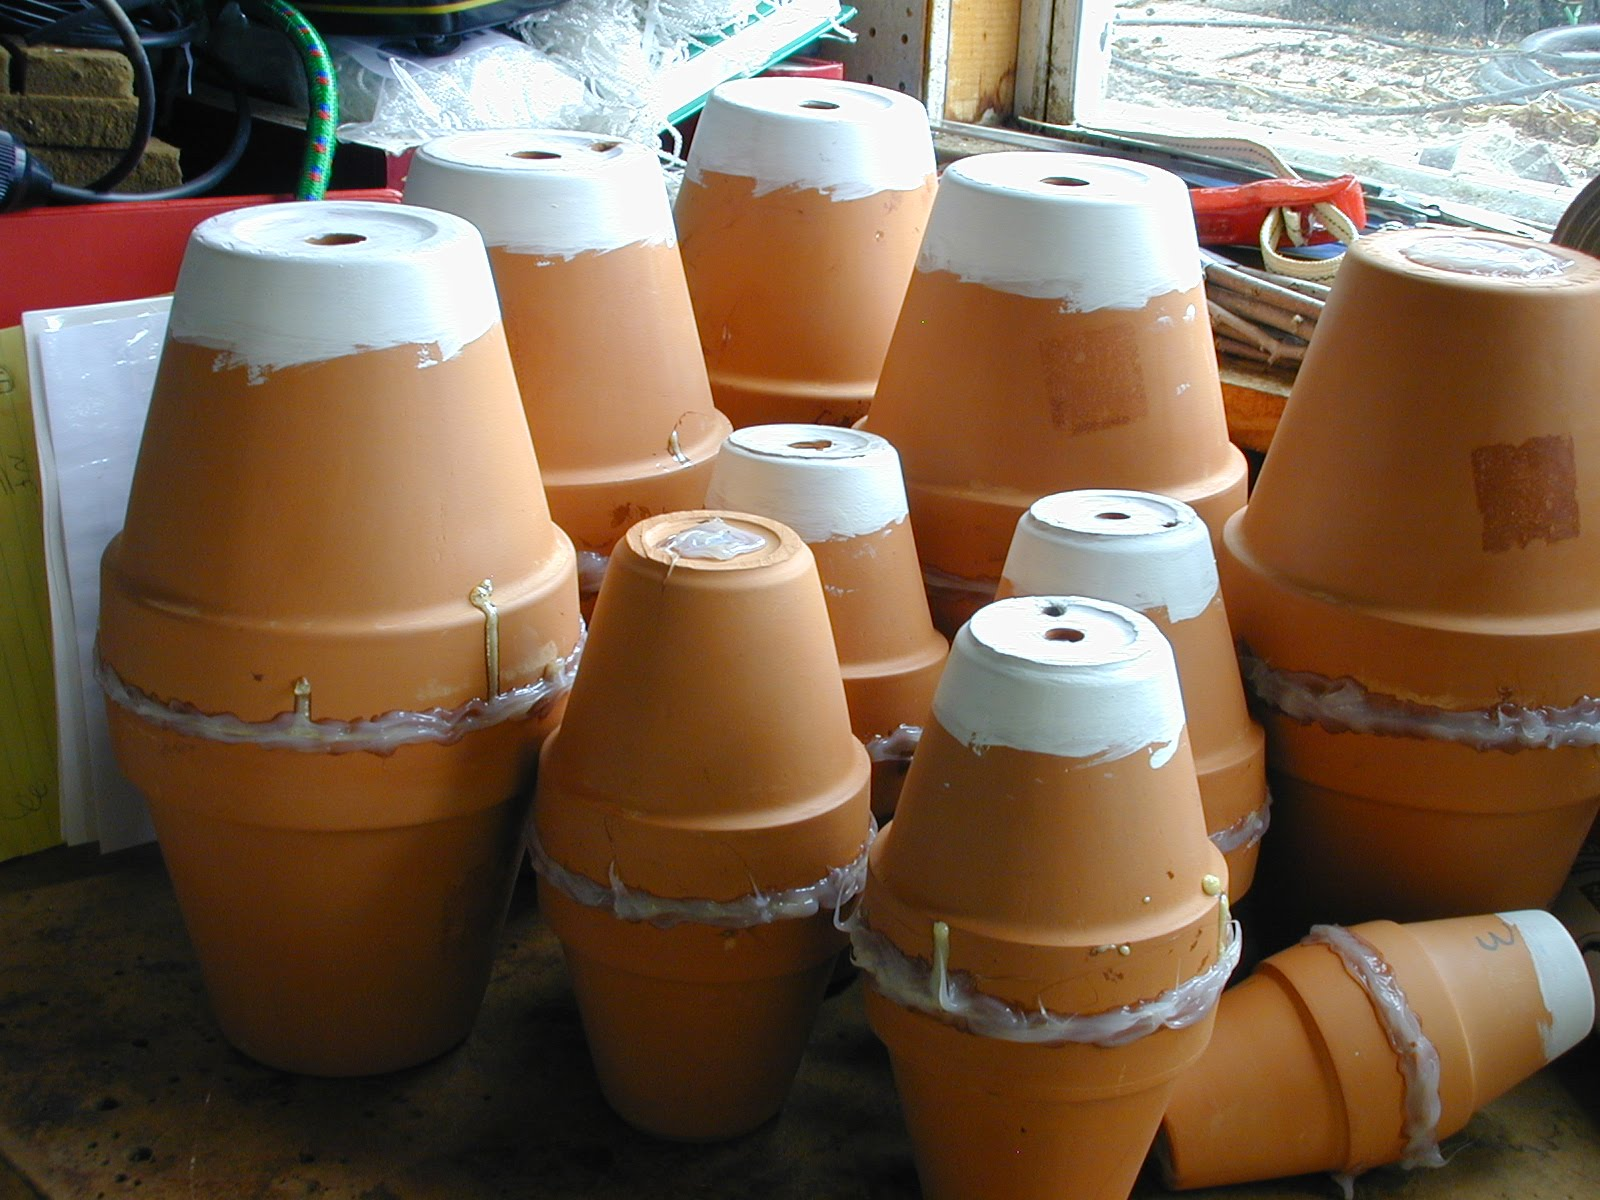 Global Buckets Old Olla Irrigation Clay Pot System